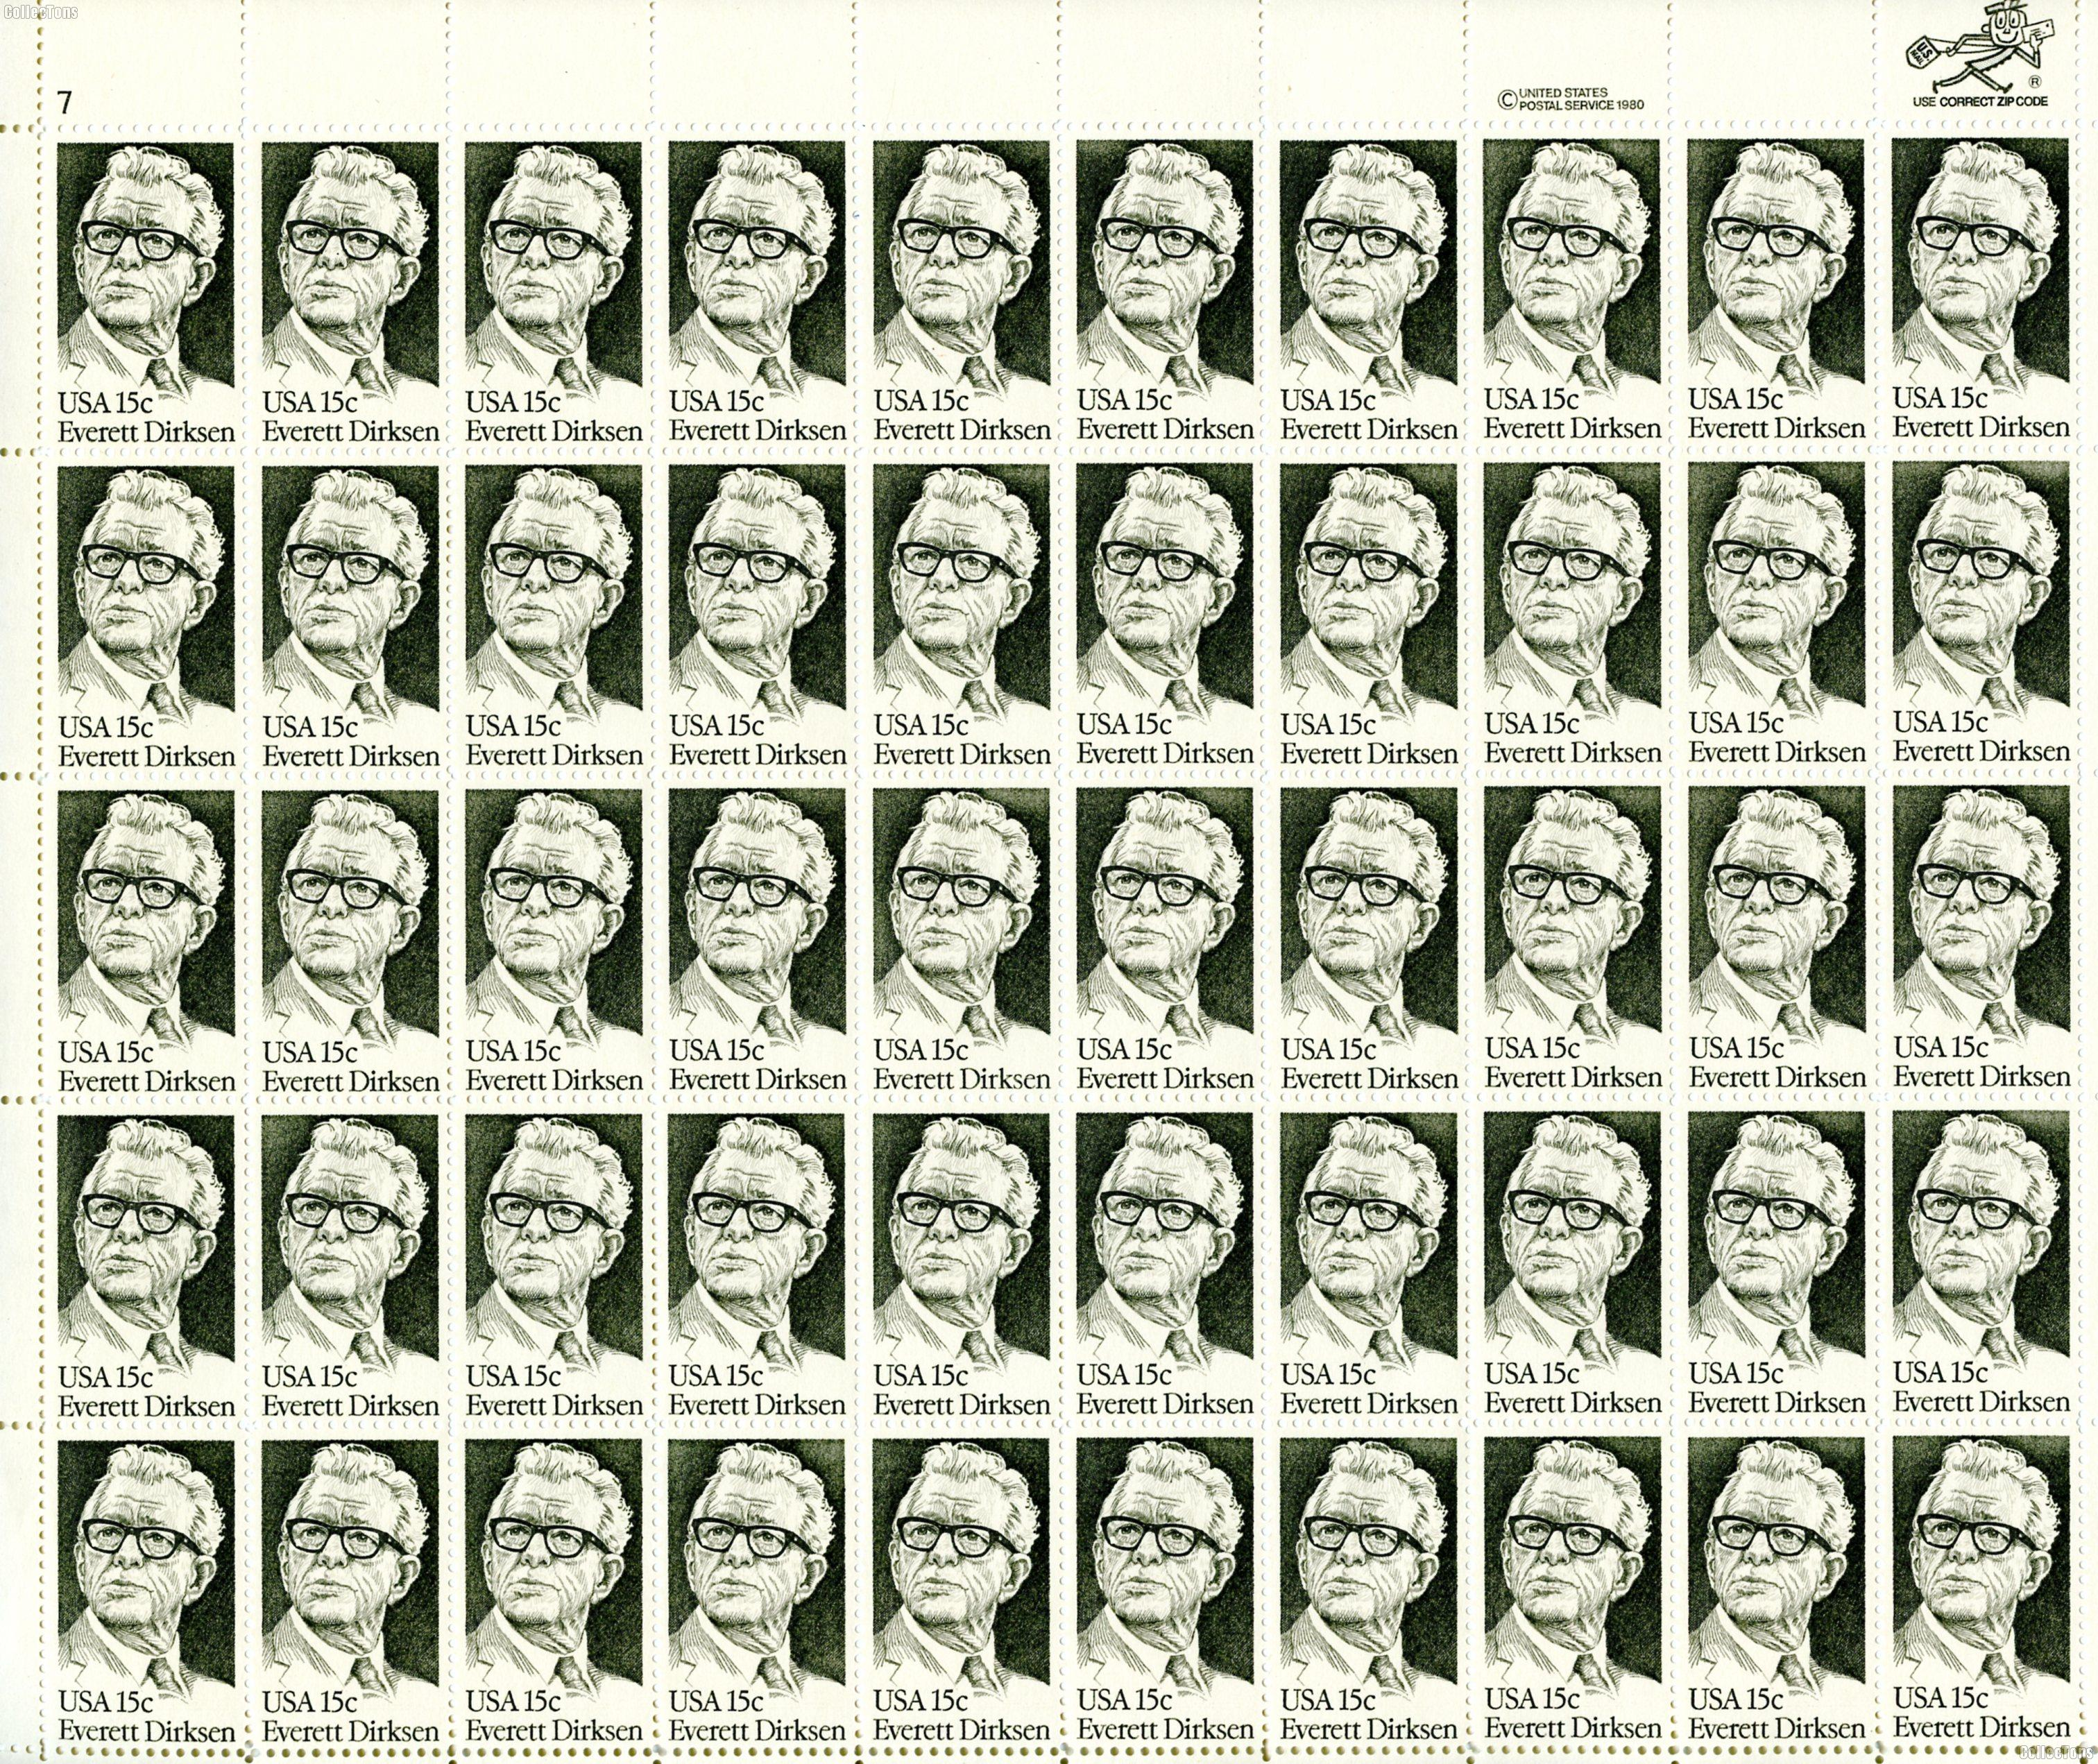 1981 Everett Dirksen 15 Cent US Postage Stamp MNH Sheet of 50 Scott #1874